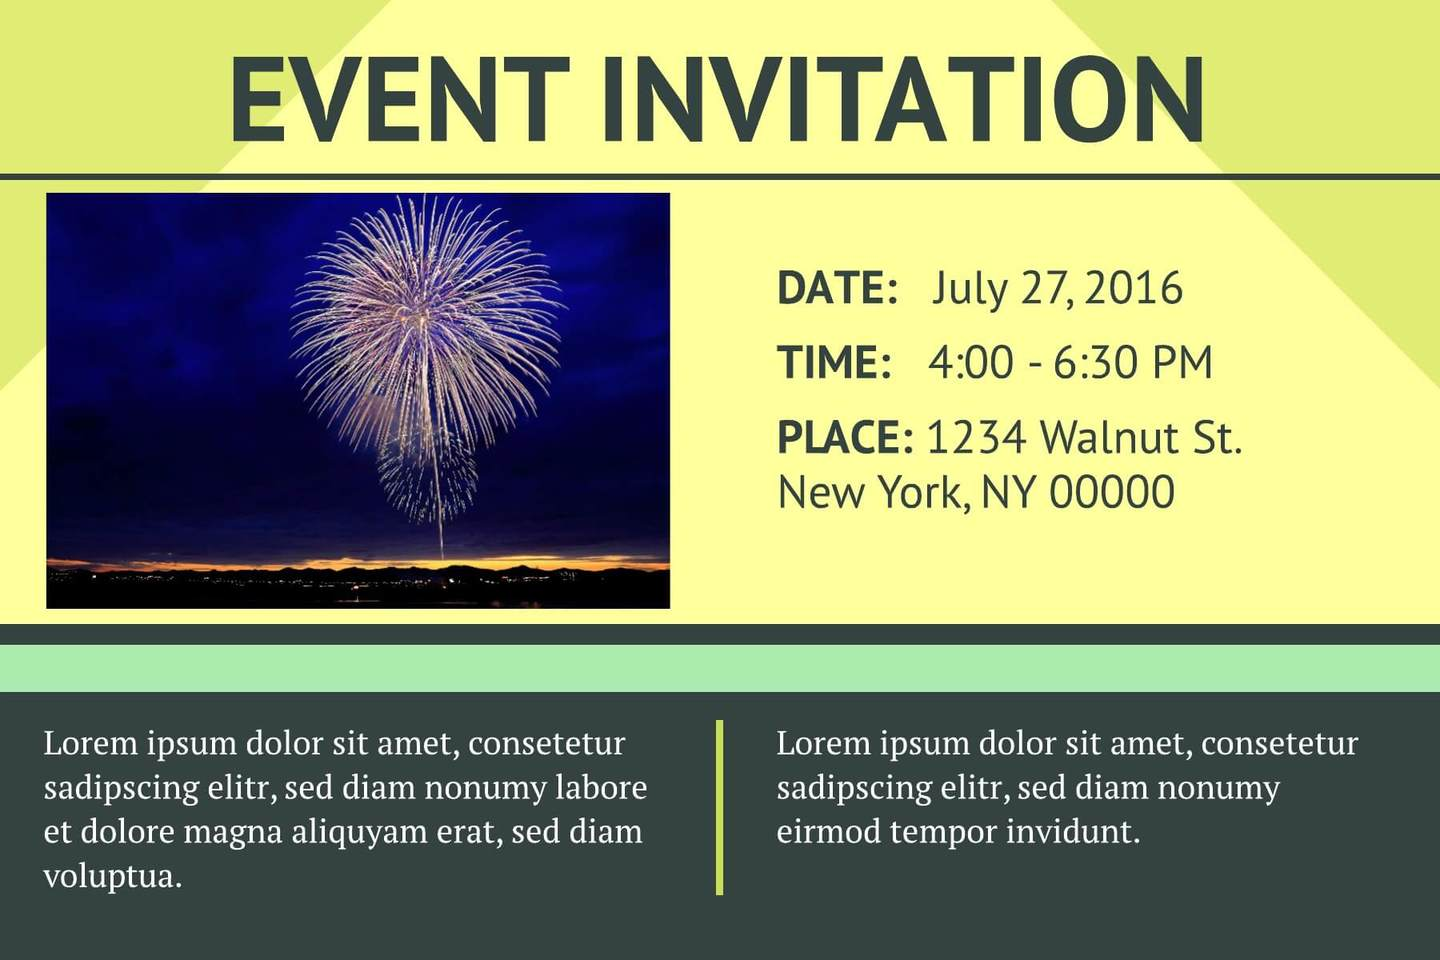 3 free event invitation templates examples lucidpress event invitation template cheaphphosting Gallery